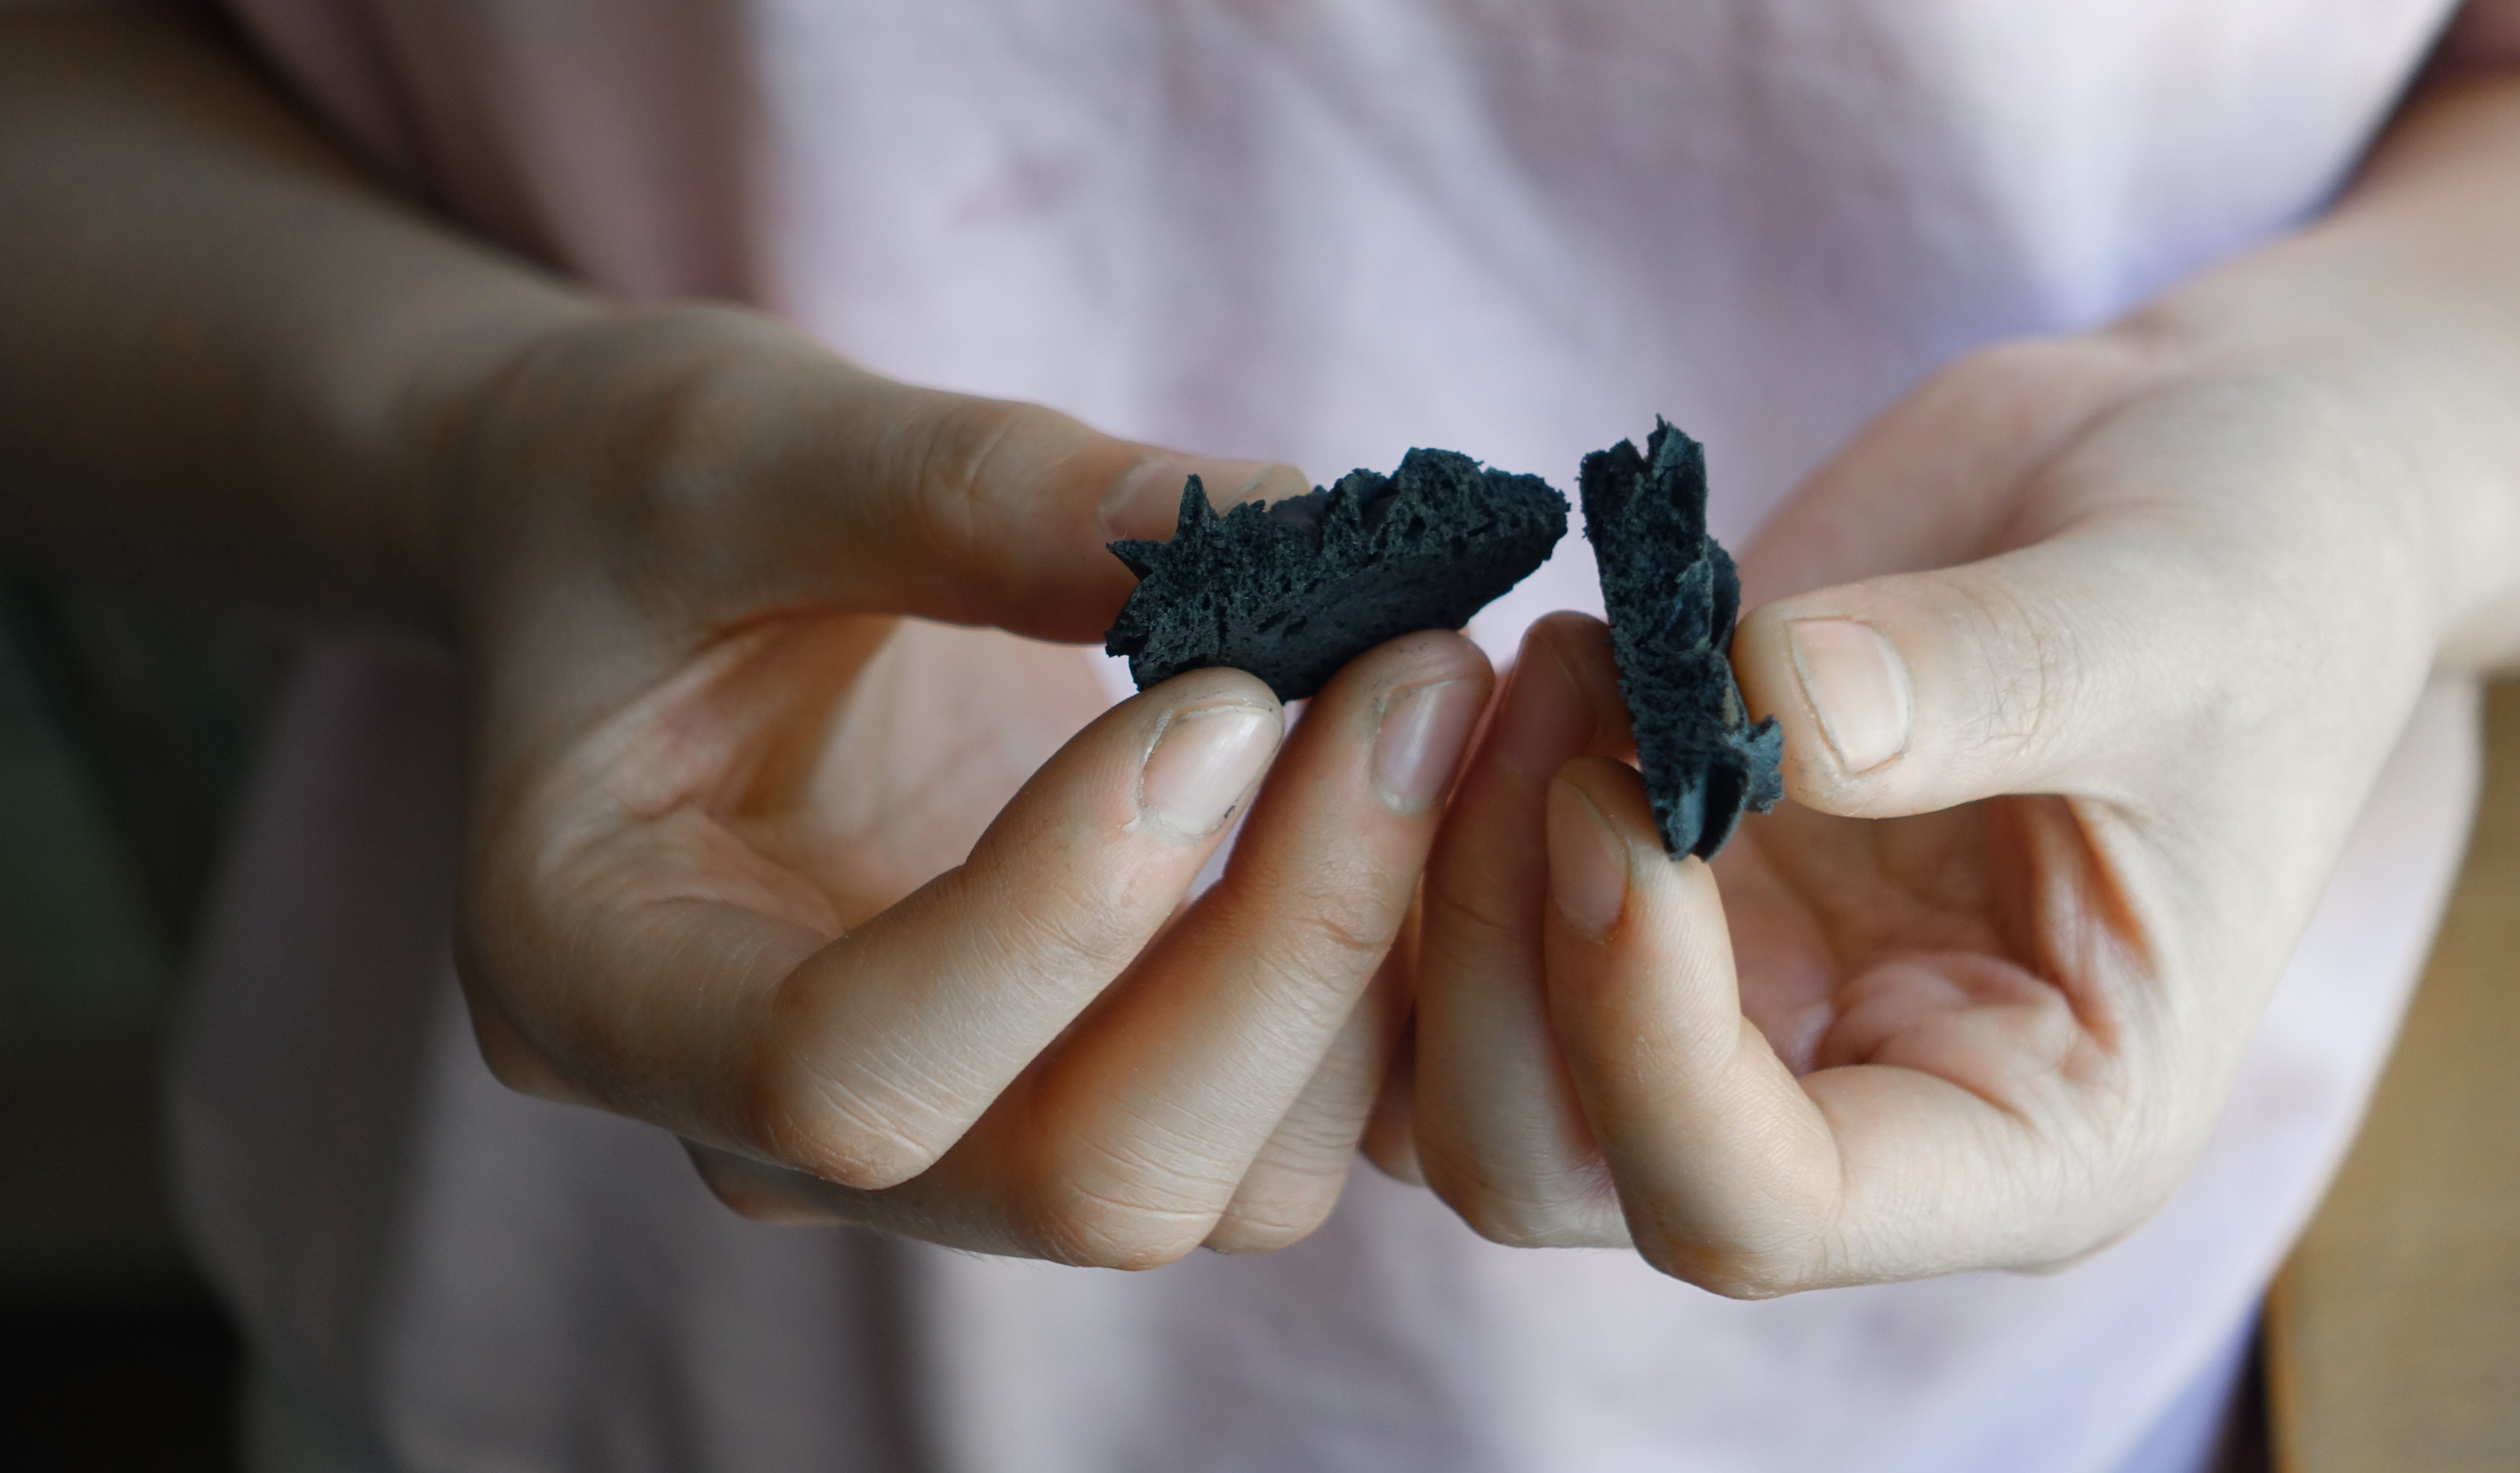 Person's Hand Holding Black Biscuit